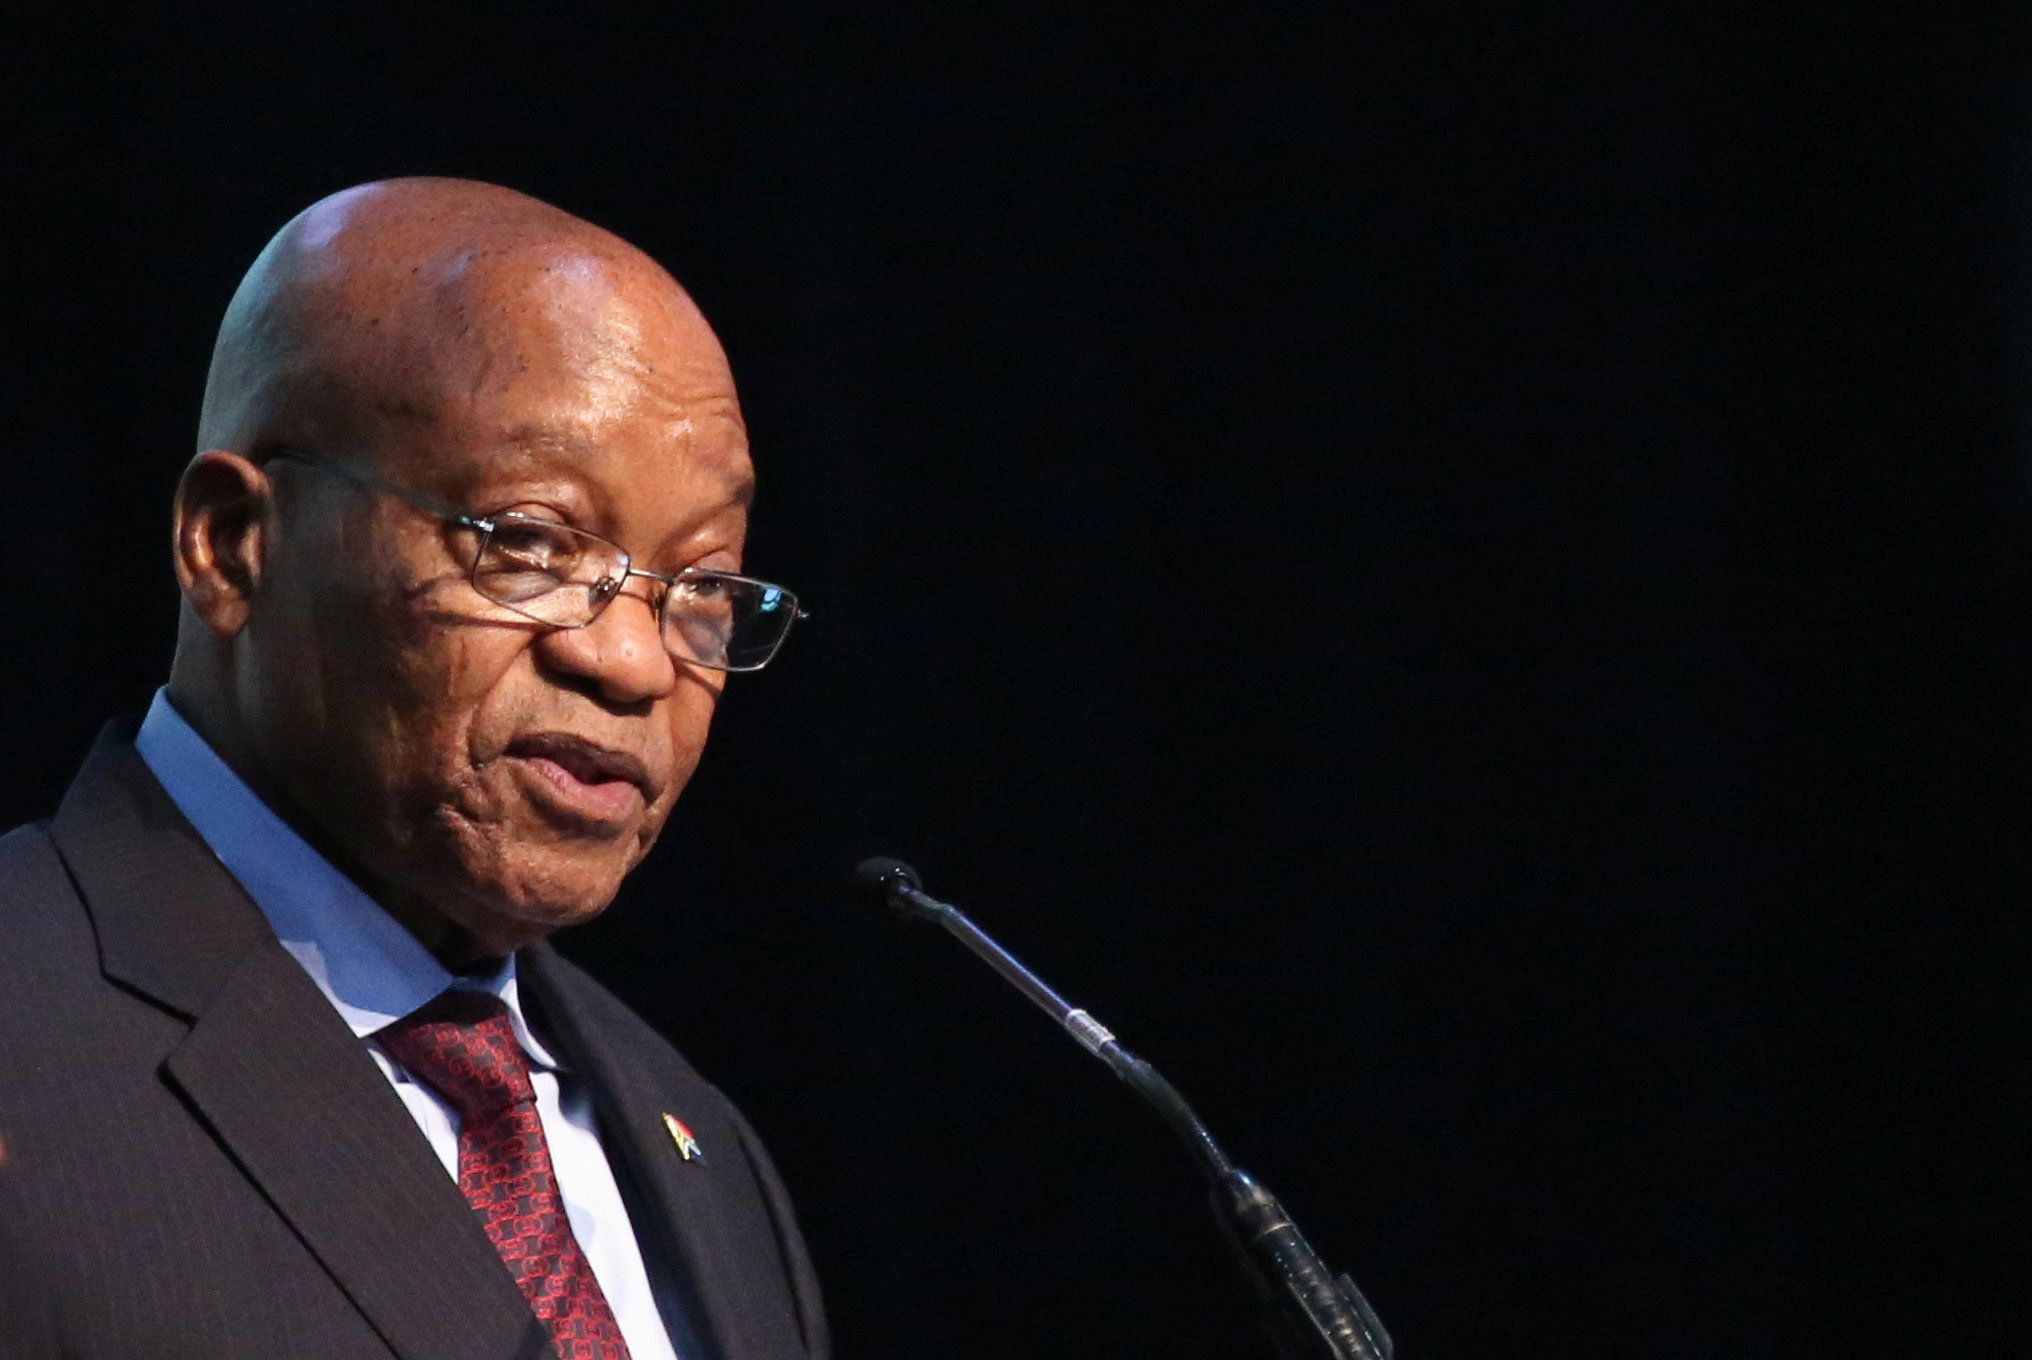 President of South Africa, Jacob Zuma speaks during the Energy Indaba conference in Midrand, South Africa, December 7, 2017. REUTERS/Siphiwe Sibeko